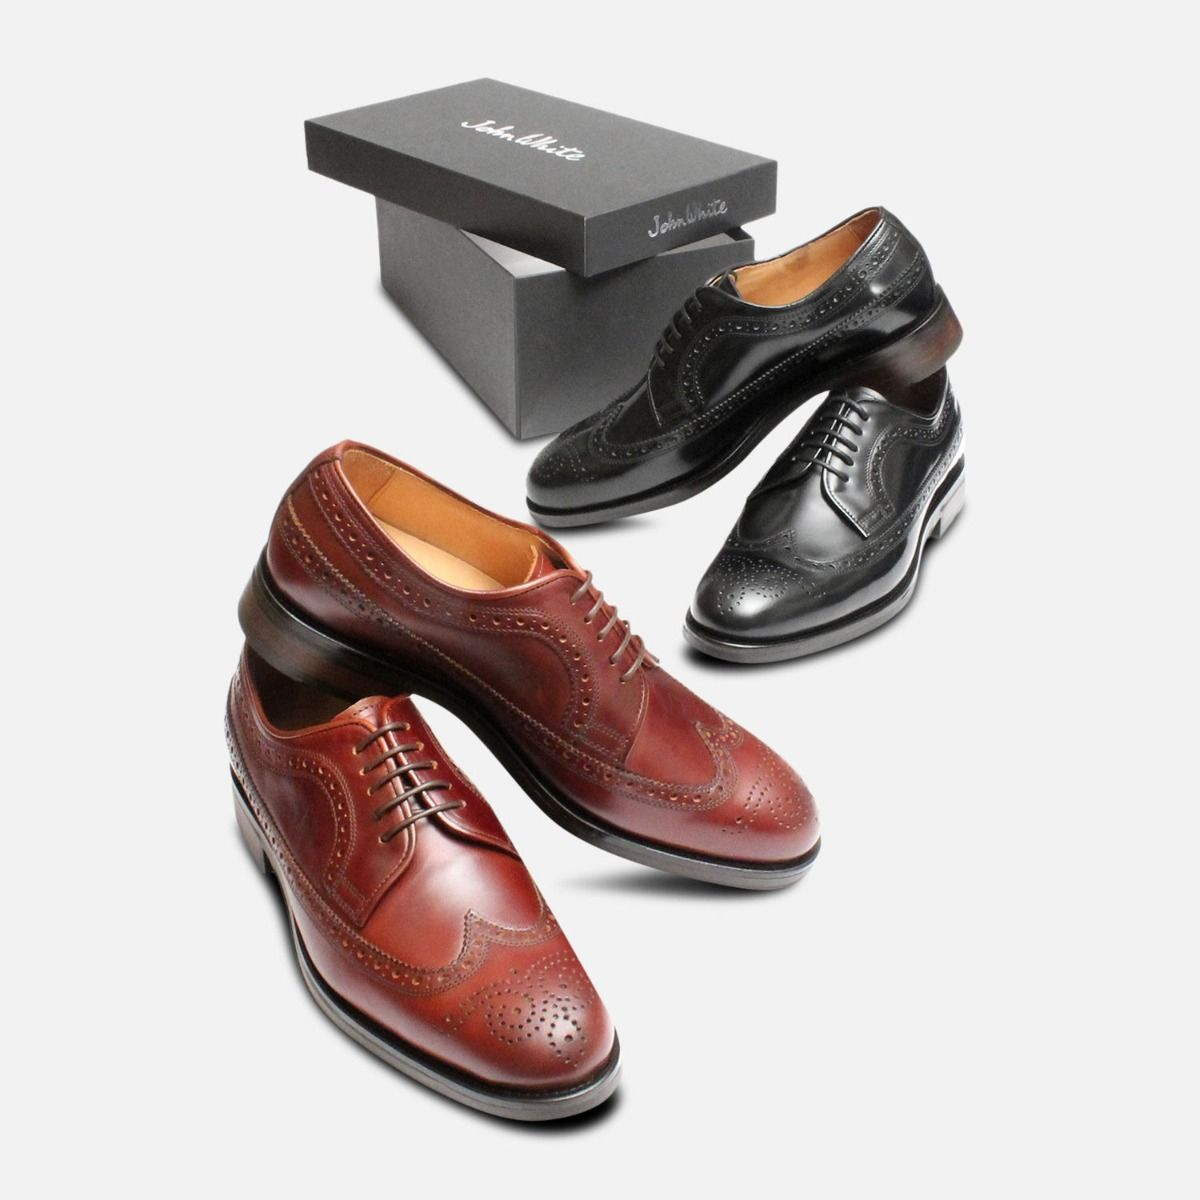 Black Longwing Bounty Brogues by John White Shoes